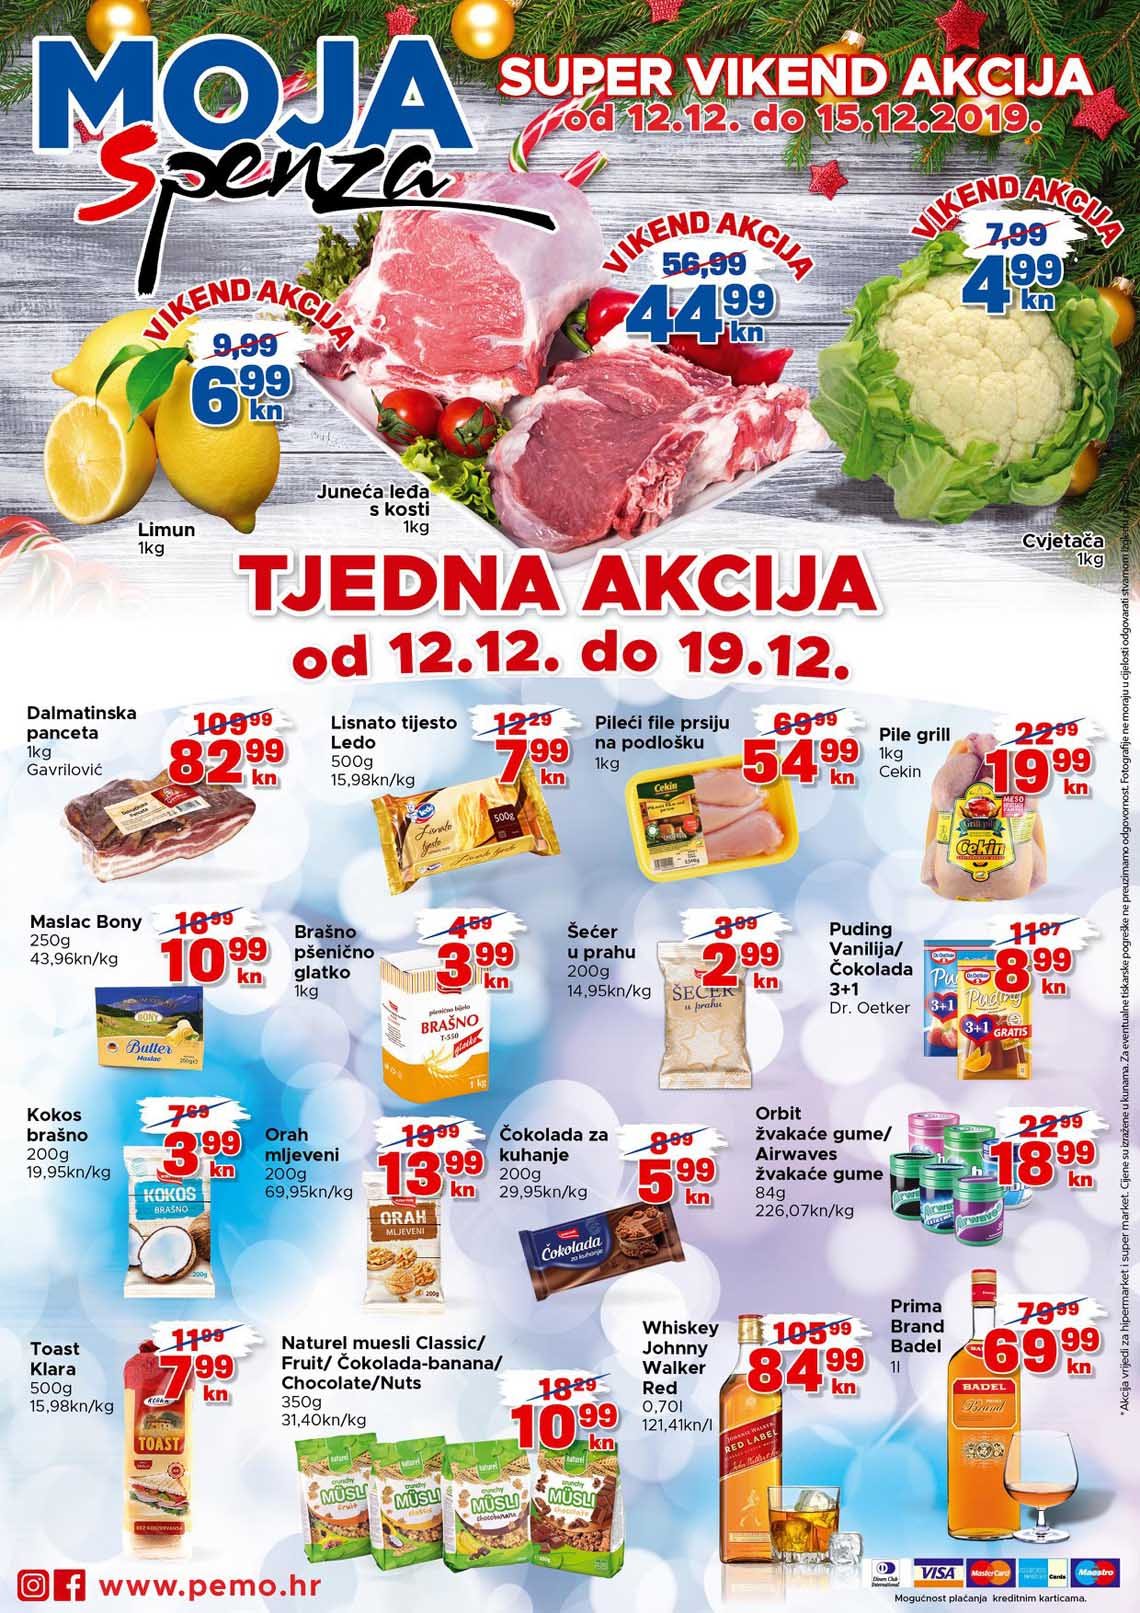 PEMO - MOJA SPENZA - SUPER TJEDNA AKCIJA - Akcija do 19.12.2019.